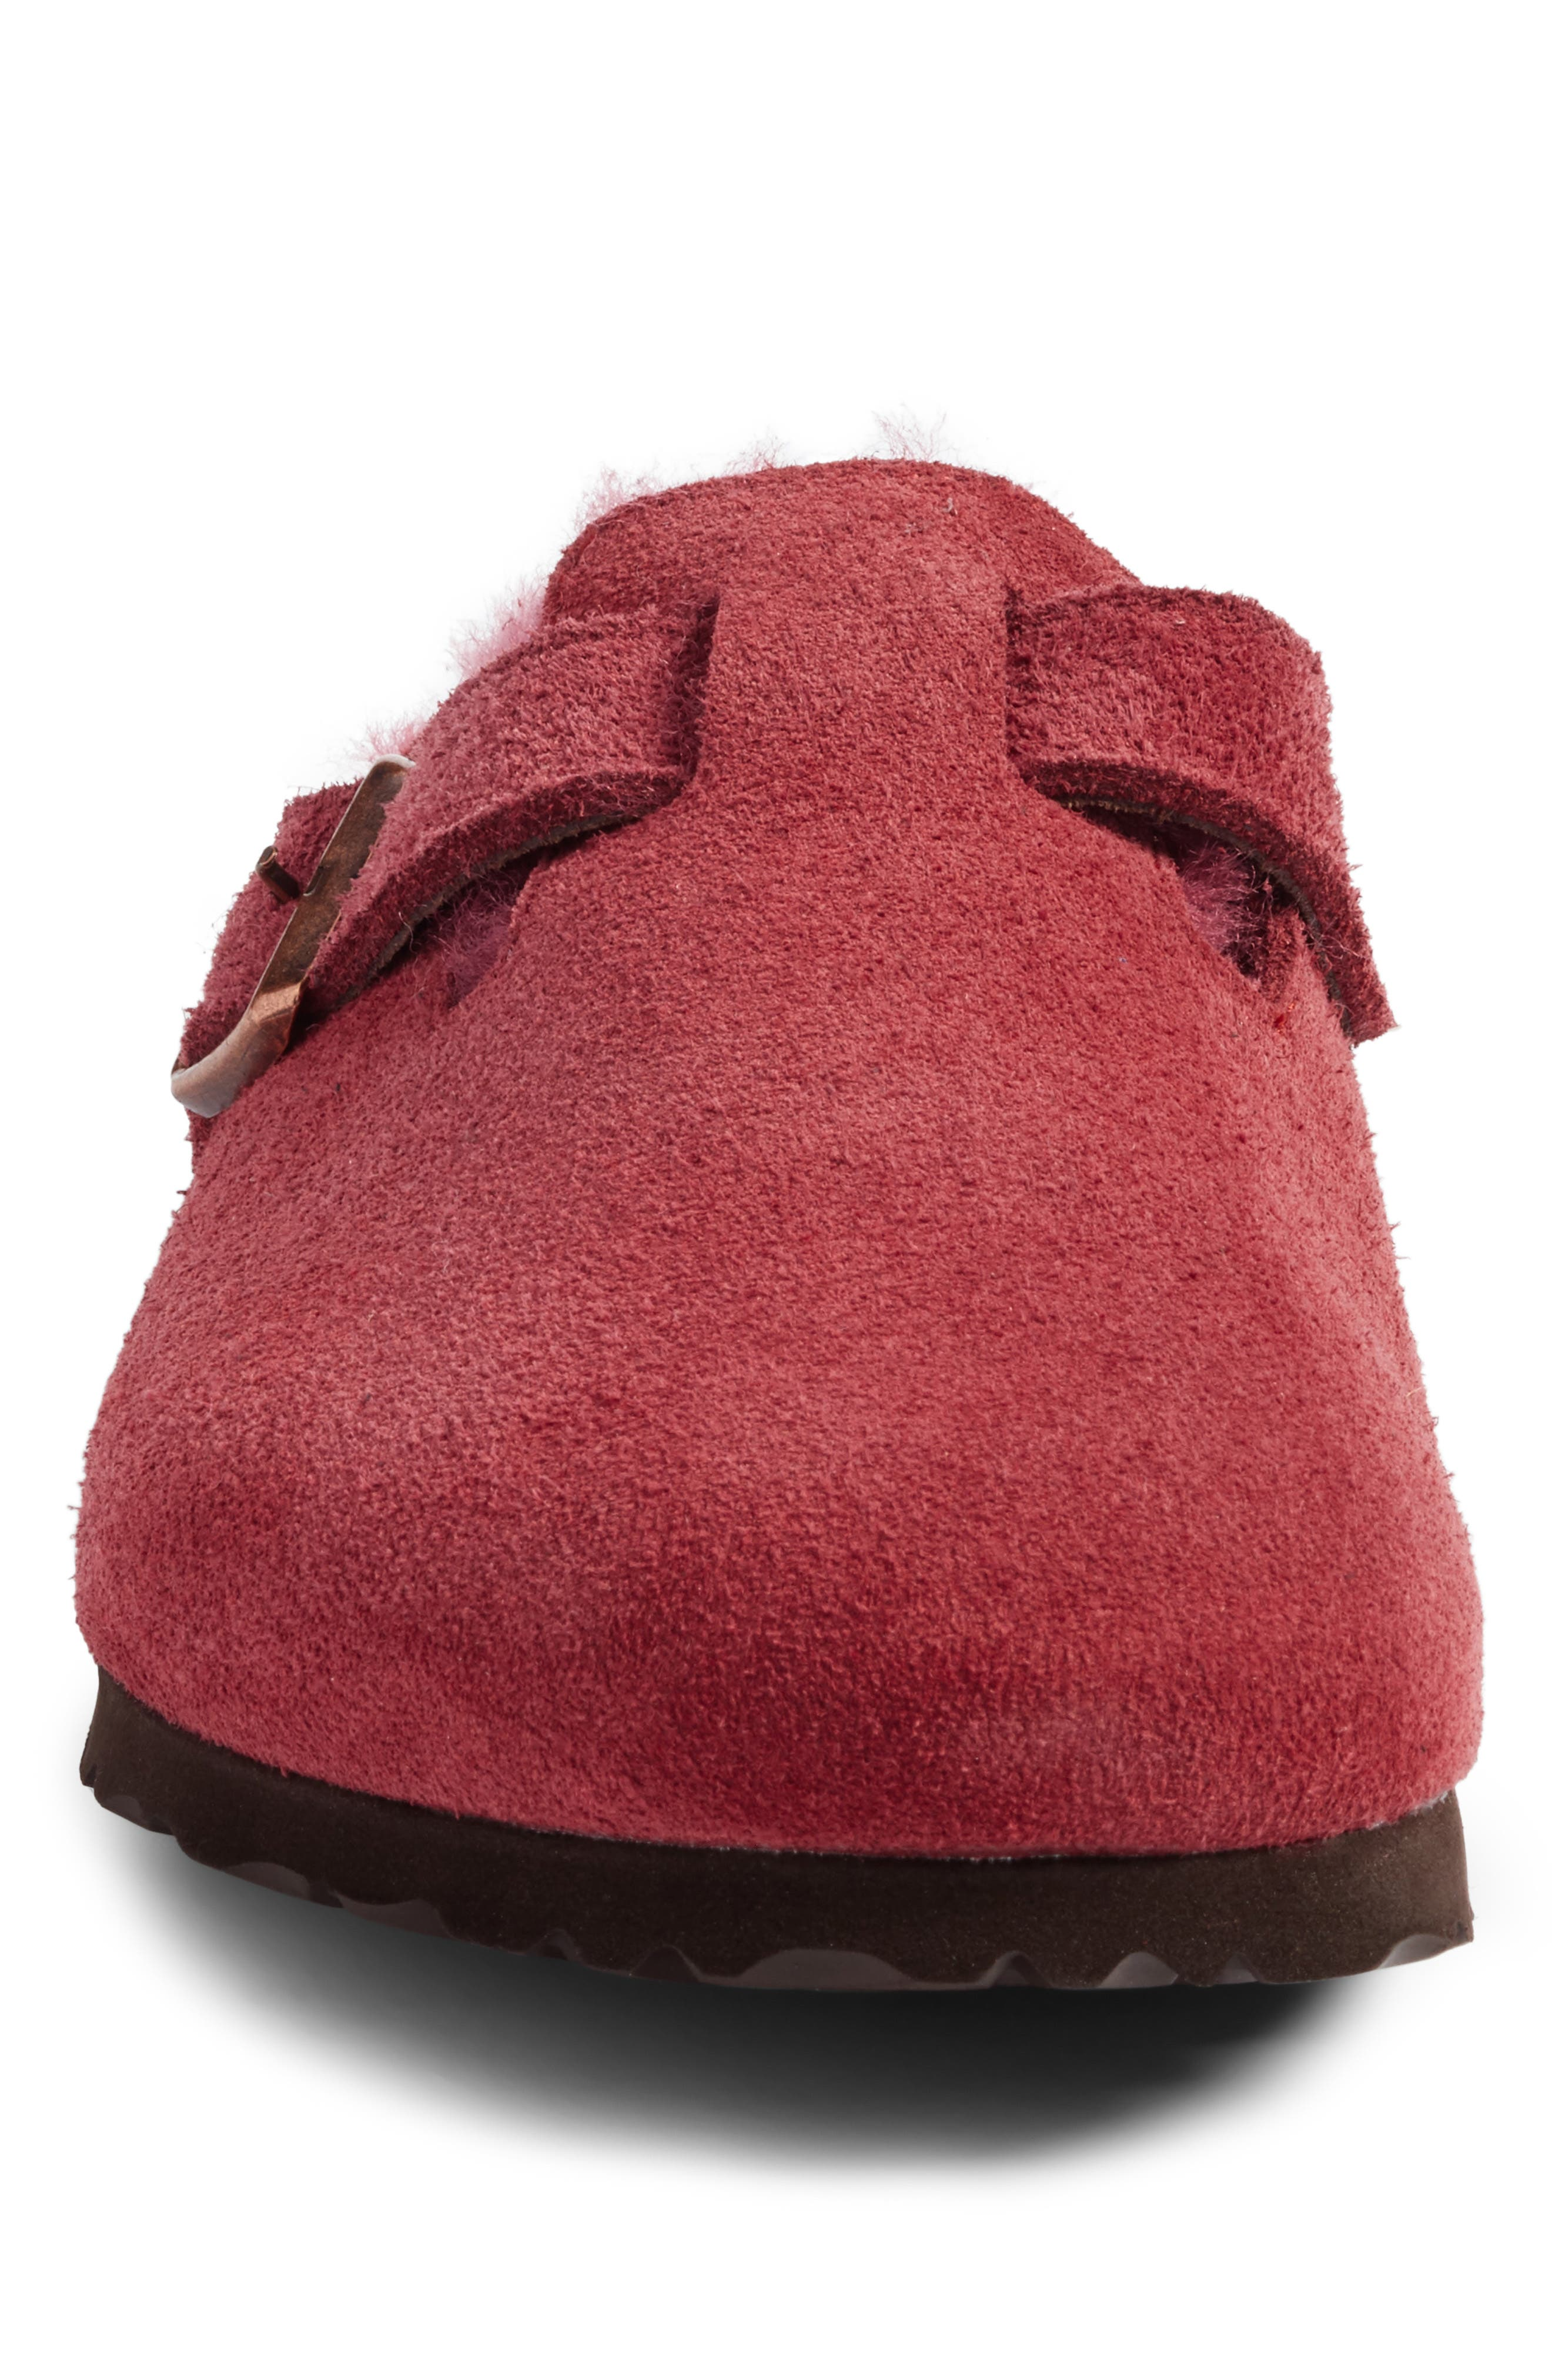 Boston Genuine Shearling Lined Clog,                             Alternate thumbnail 4, color,                             930